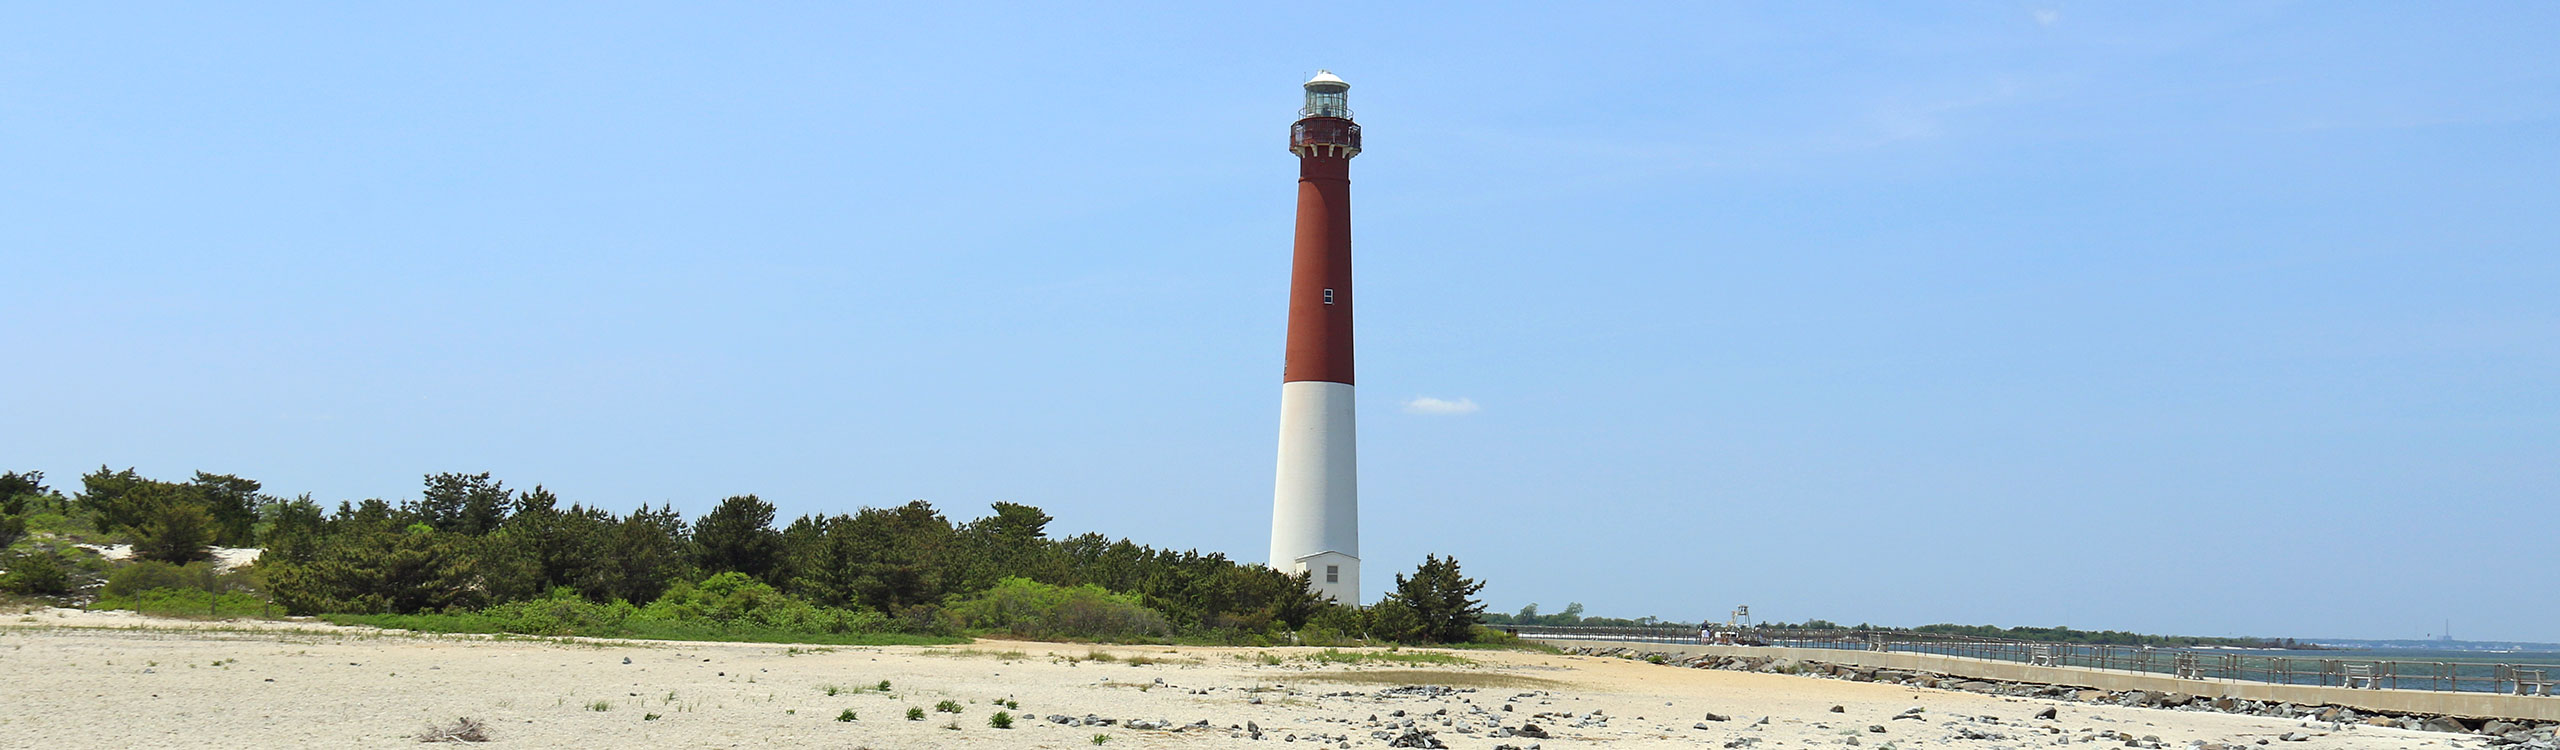 Lighthouses in New Jersey